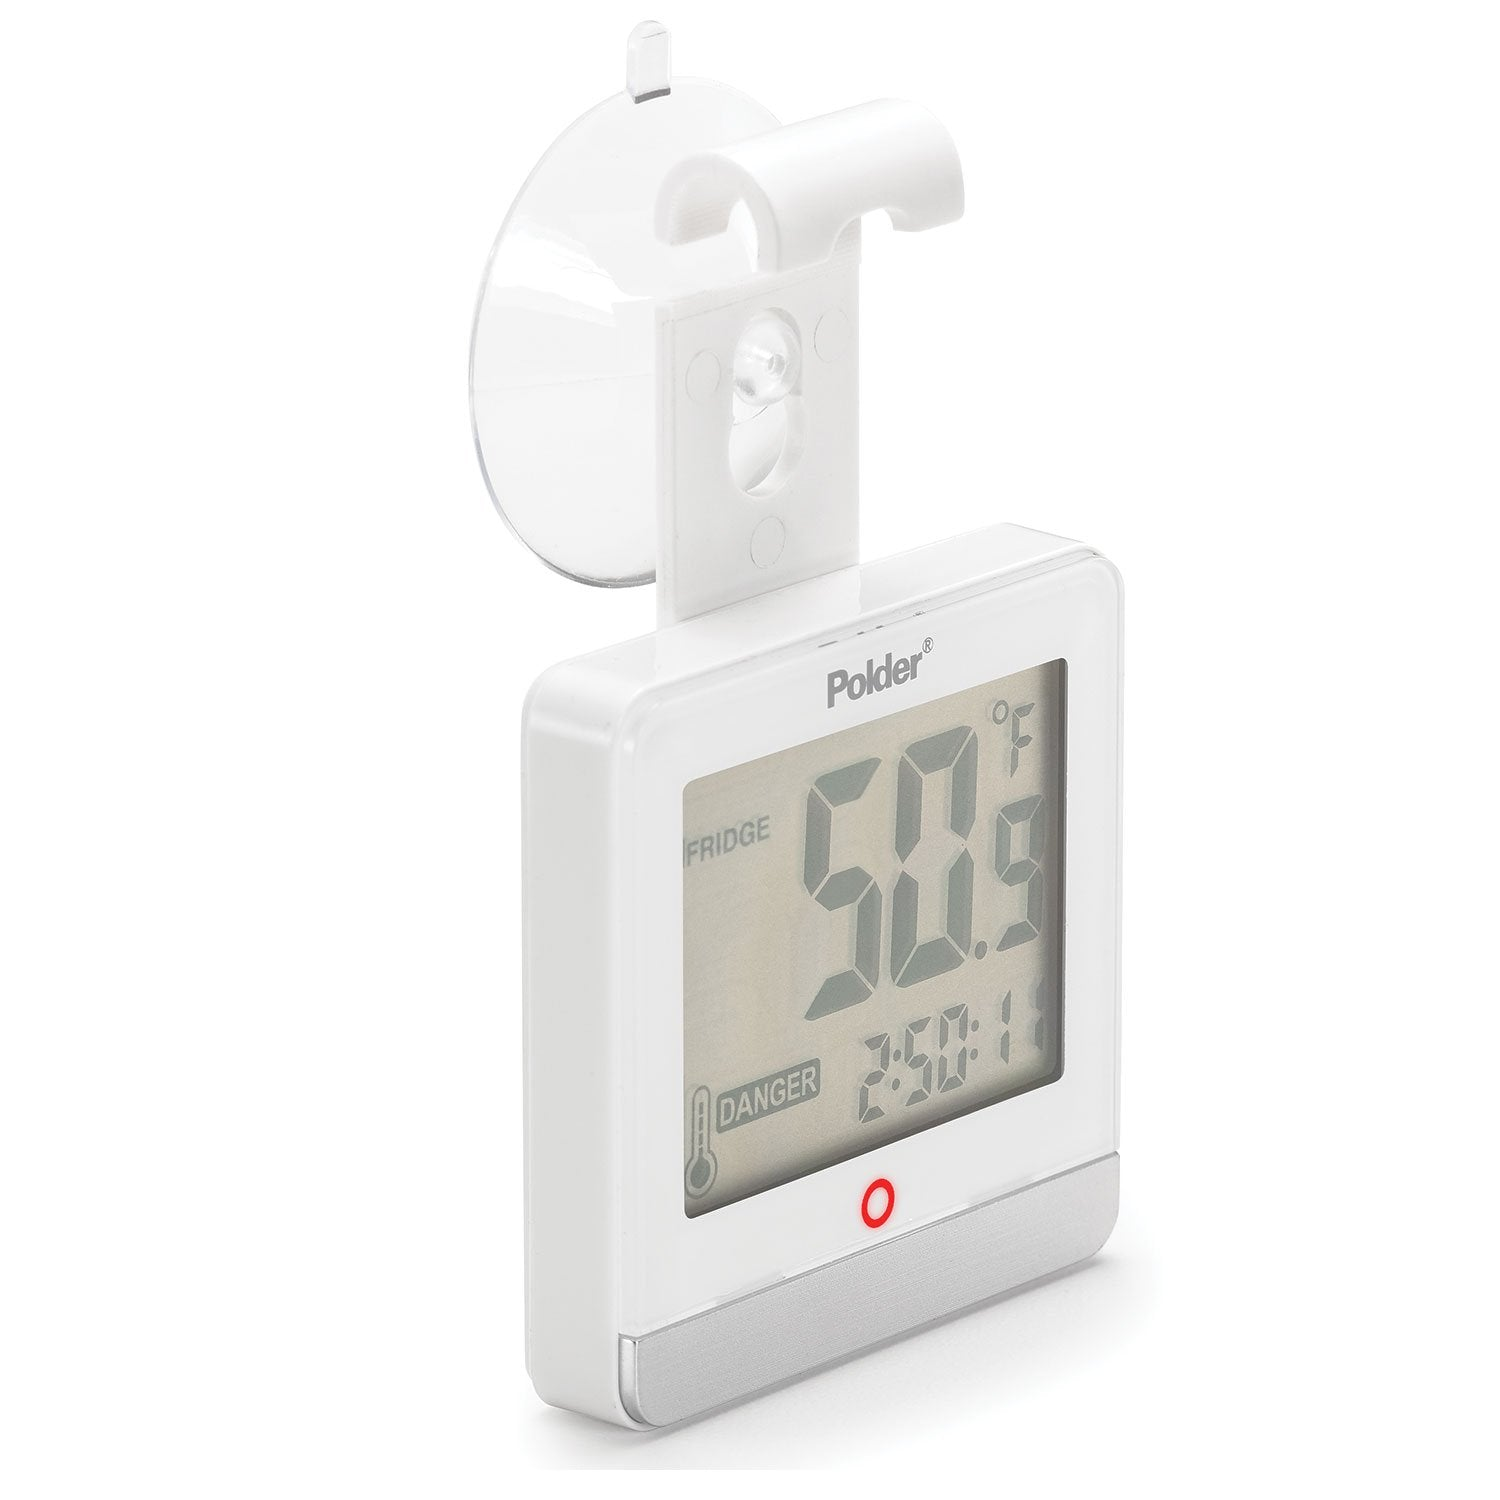 Digital Fridge / Freezer Thermometer